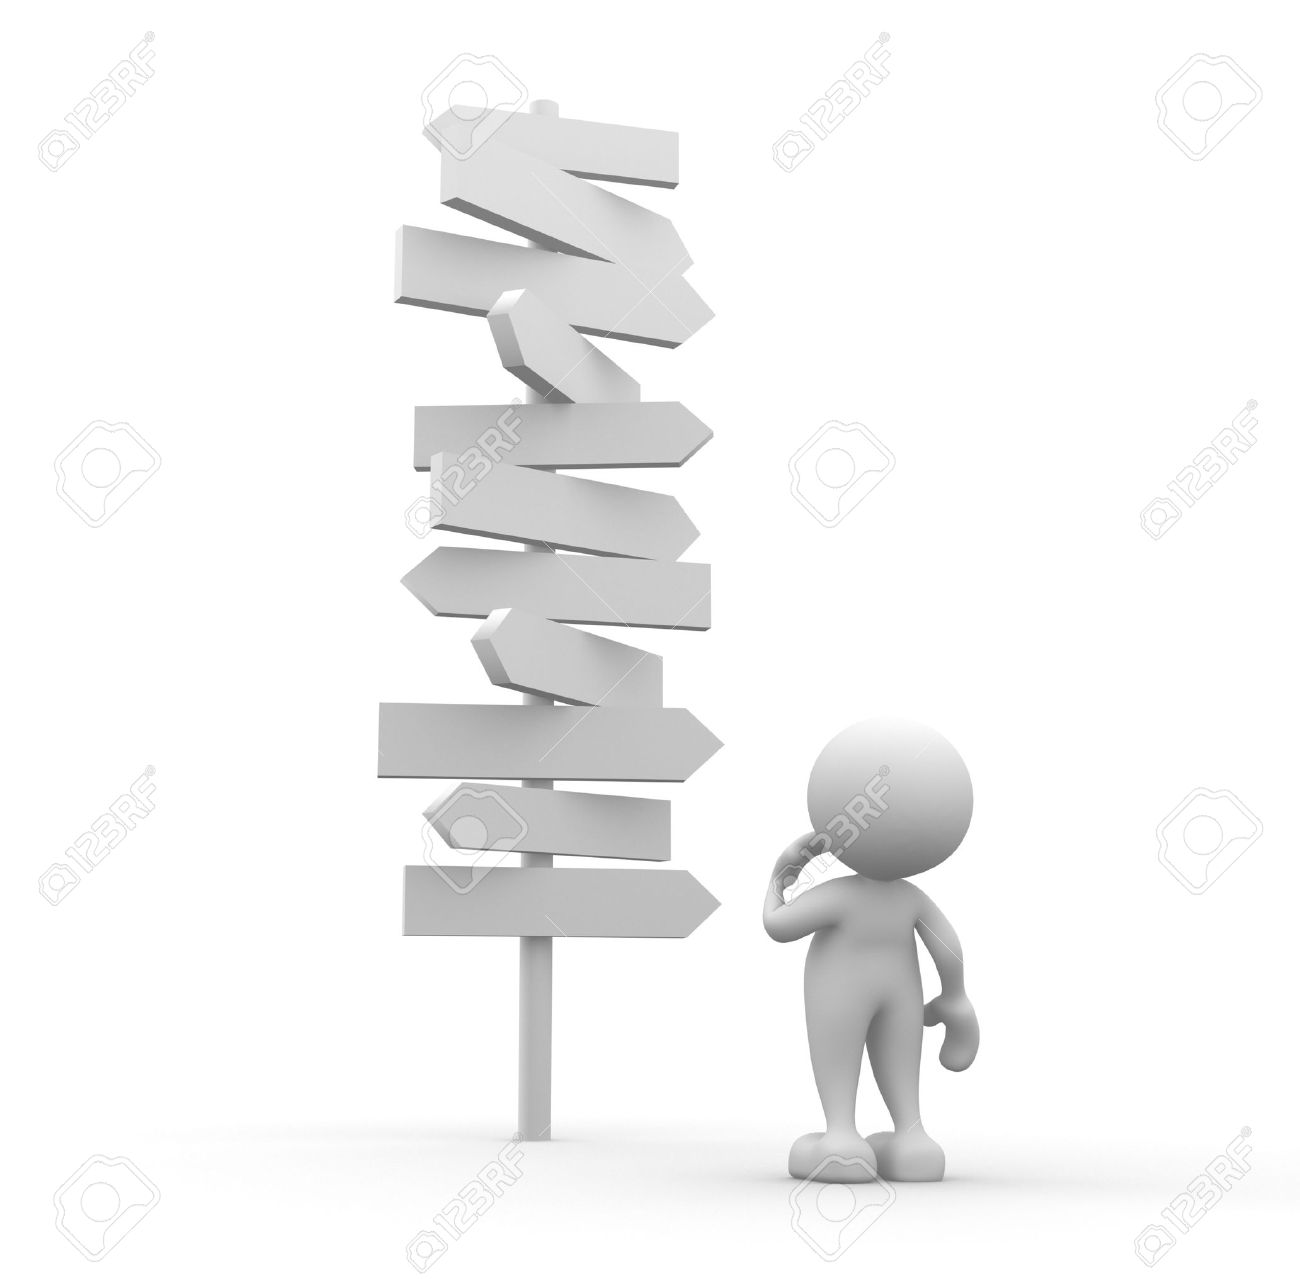 3d people - man, person standing in front of a road signs Standard-Bild - 17532551